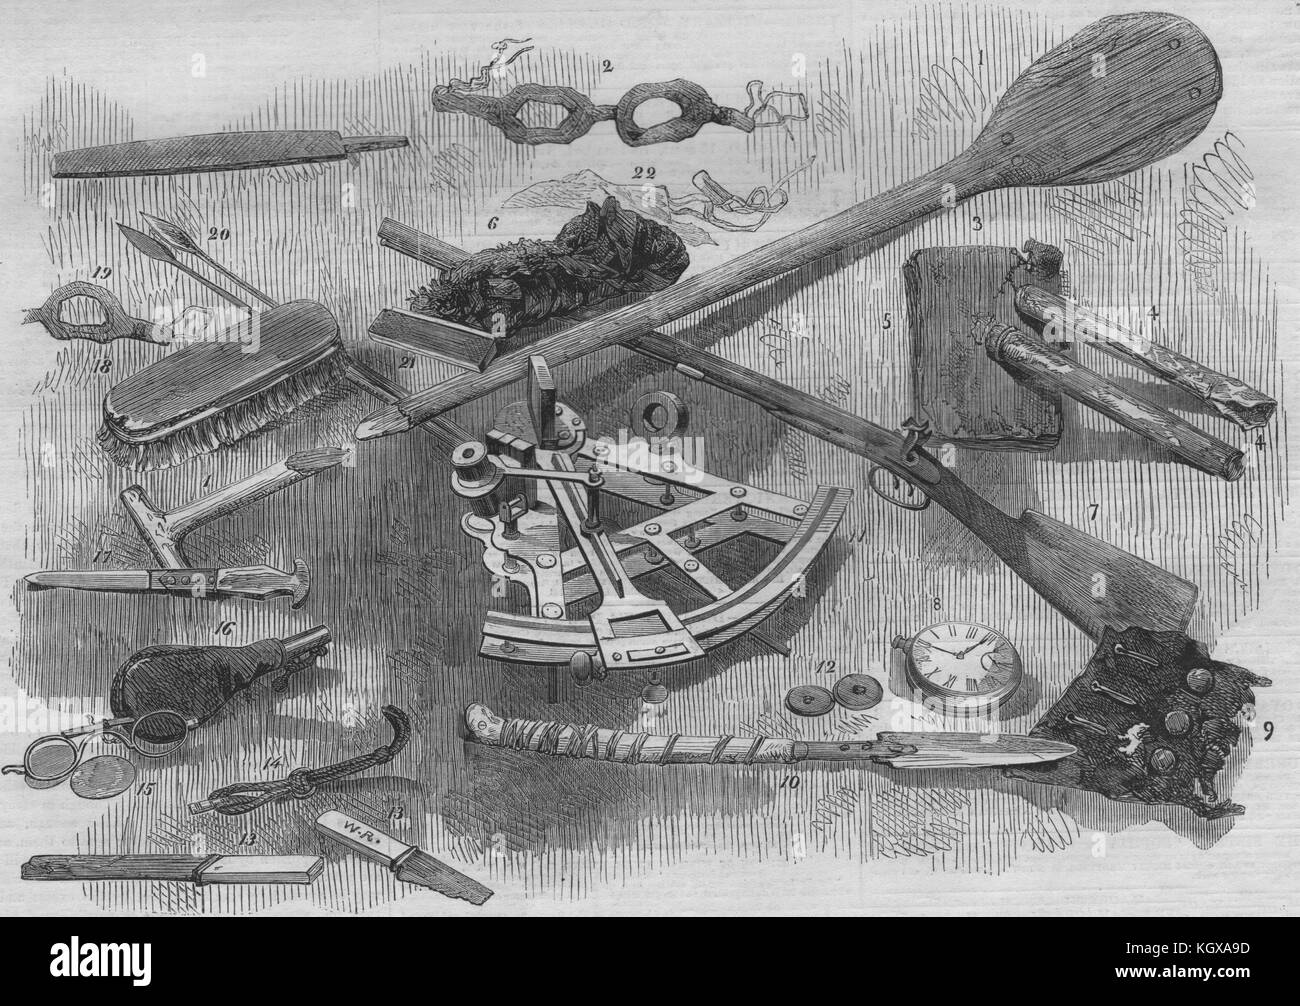 Franklin Expedition relics Paddle Goggles Gun Chronometer Sextant Snuffbox 1859. The Illustrated London News - Stock Image